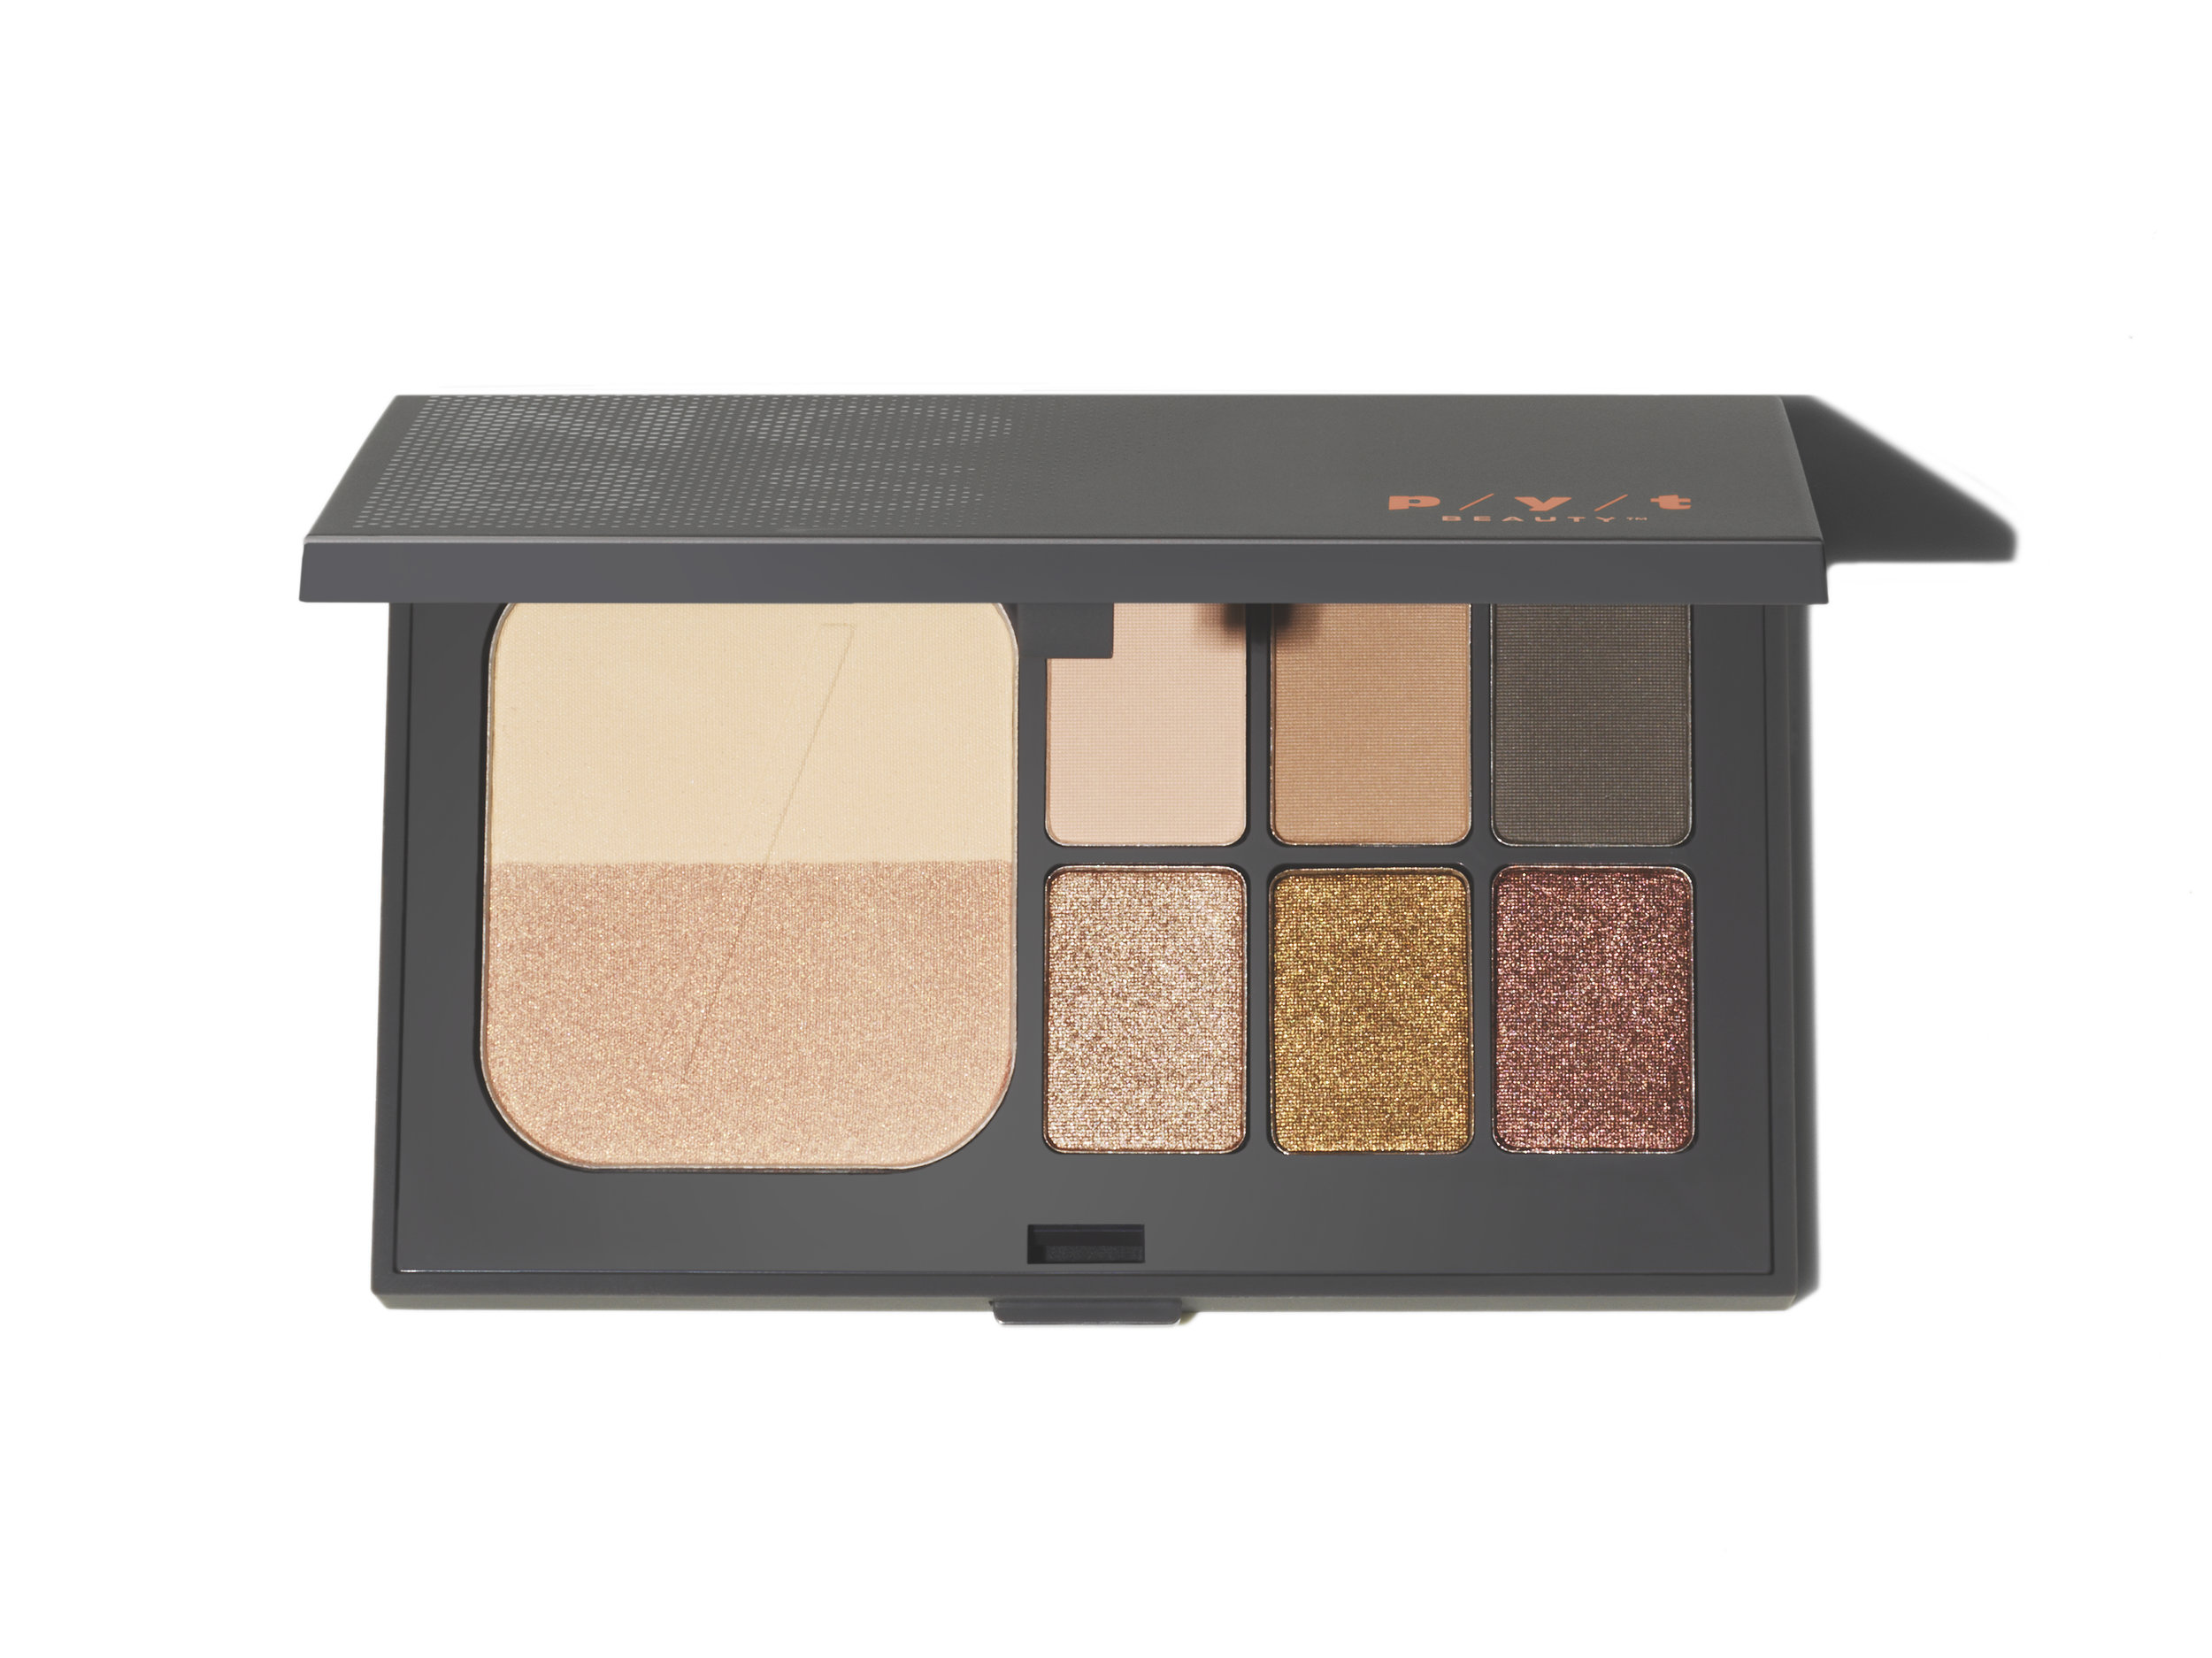 PYT Beauty eyeshadow palette